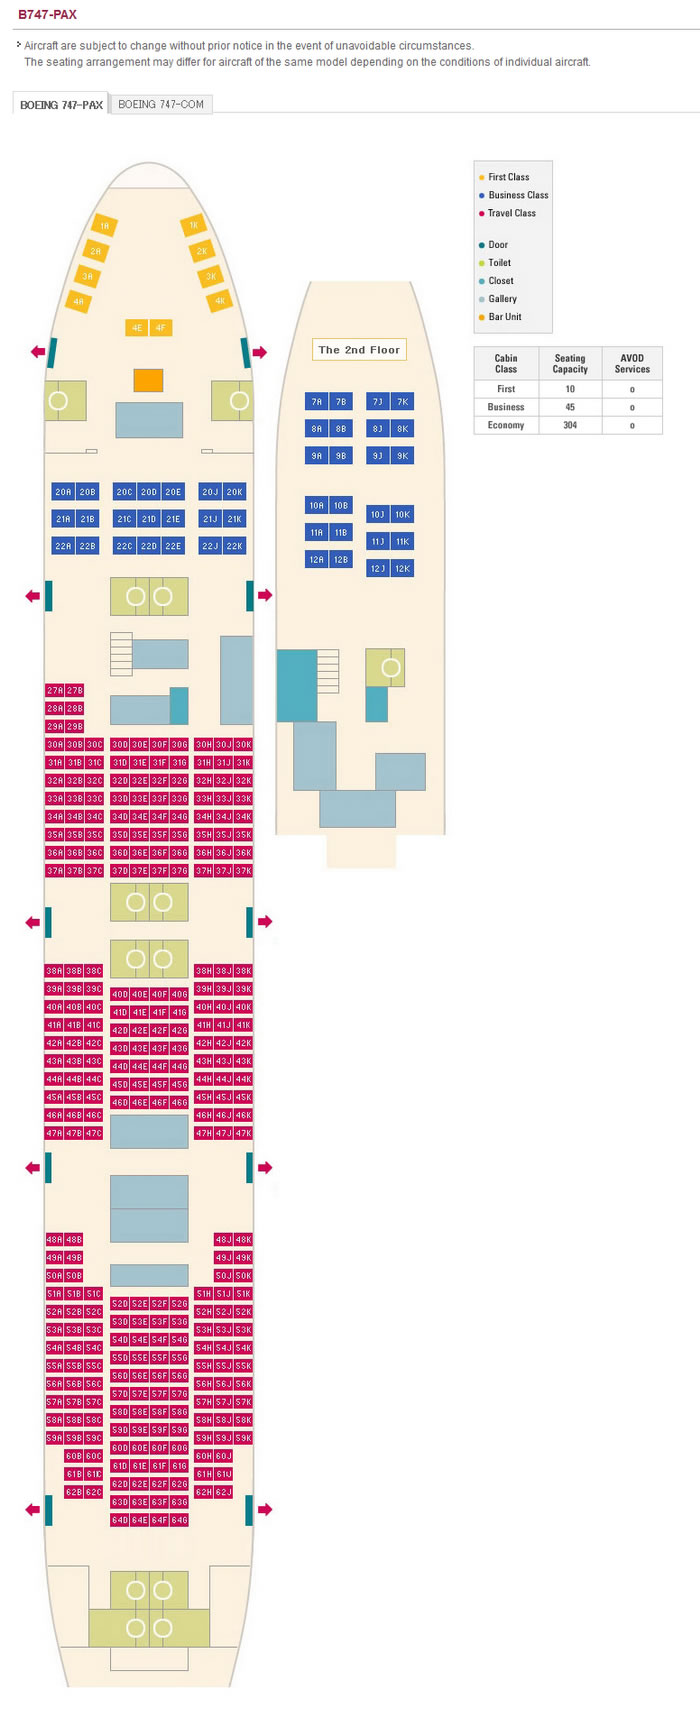 Asiana Airlines Aircraft Seatmaps Airline Seating Maps